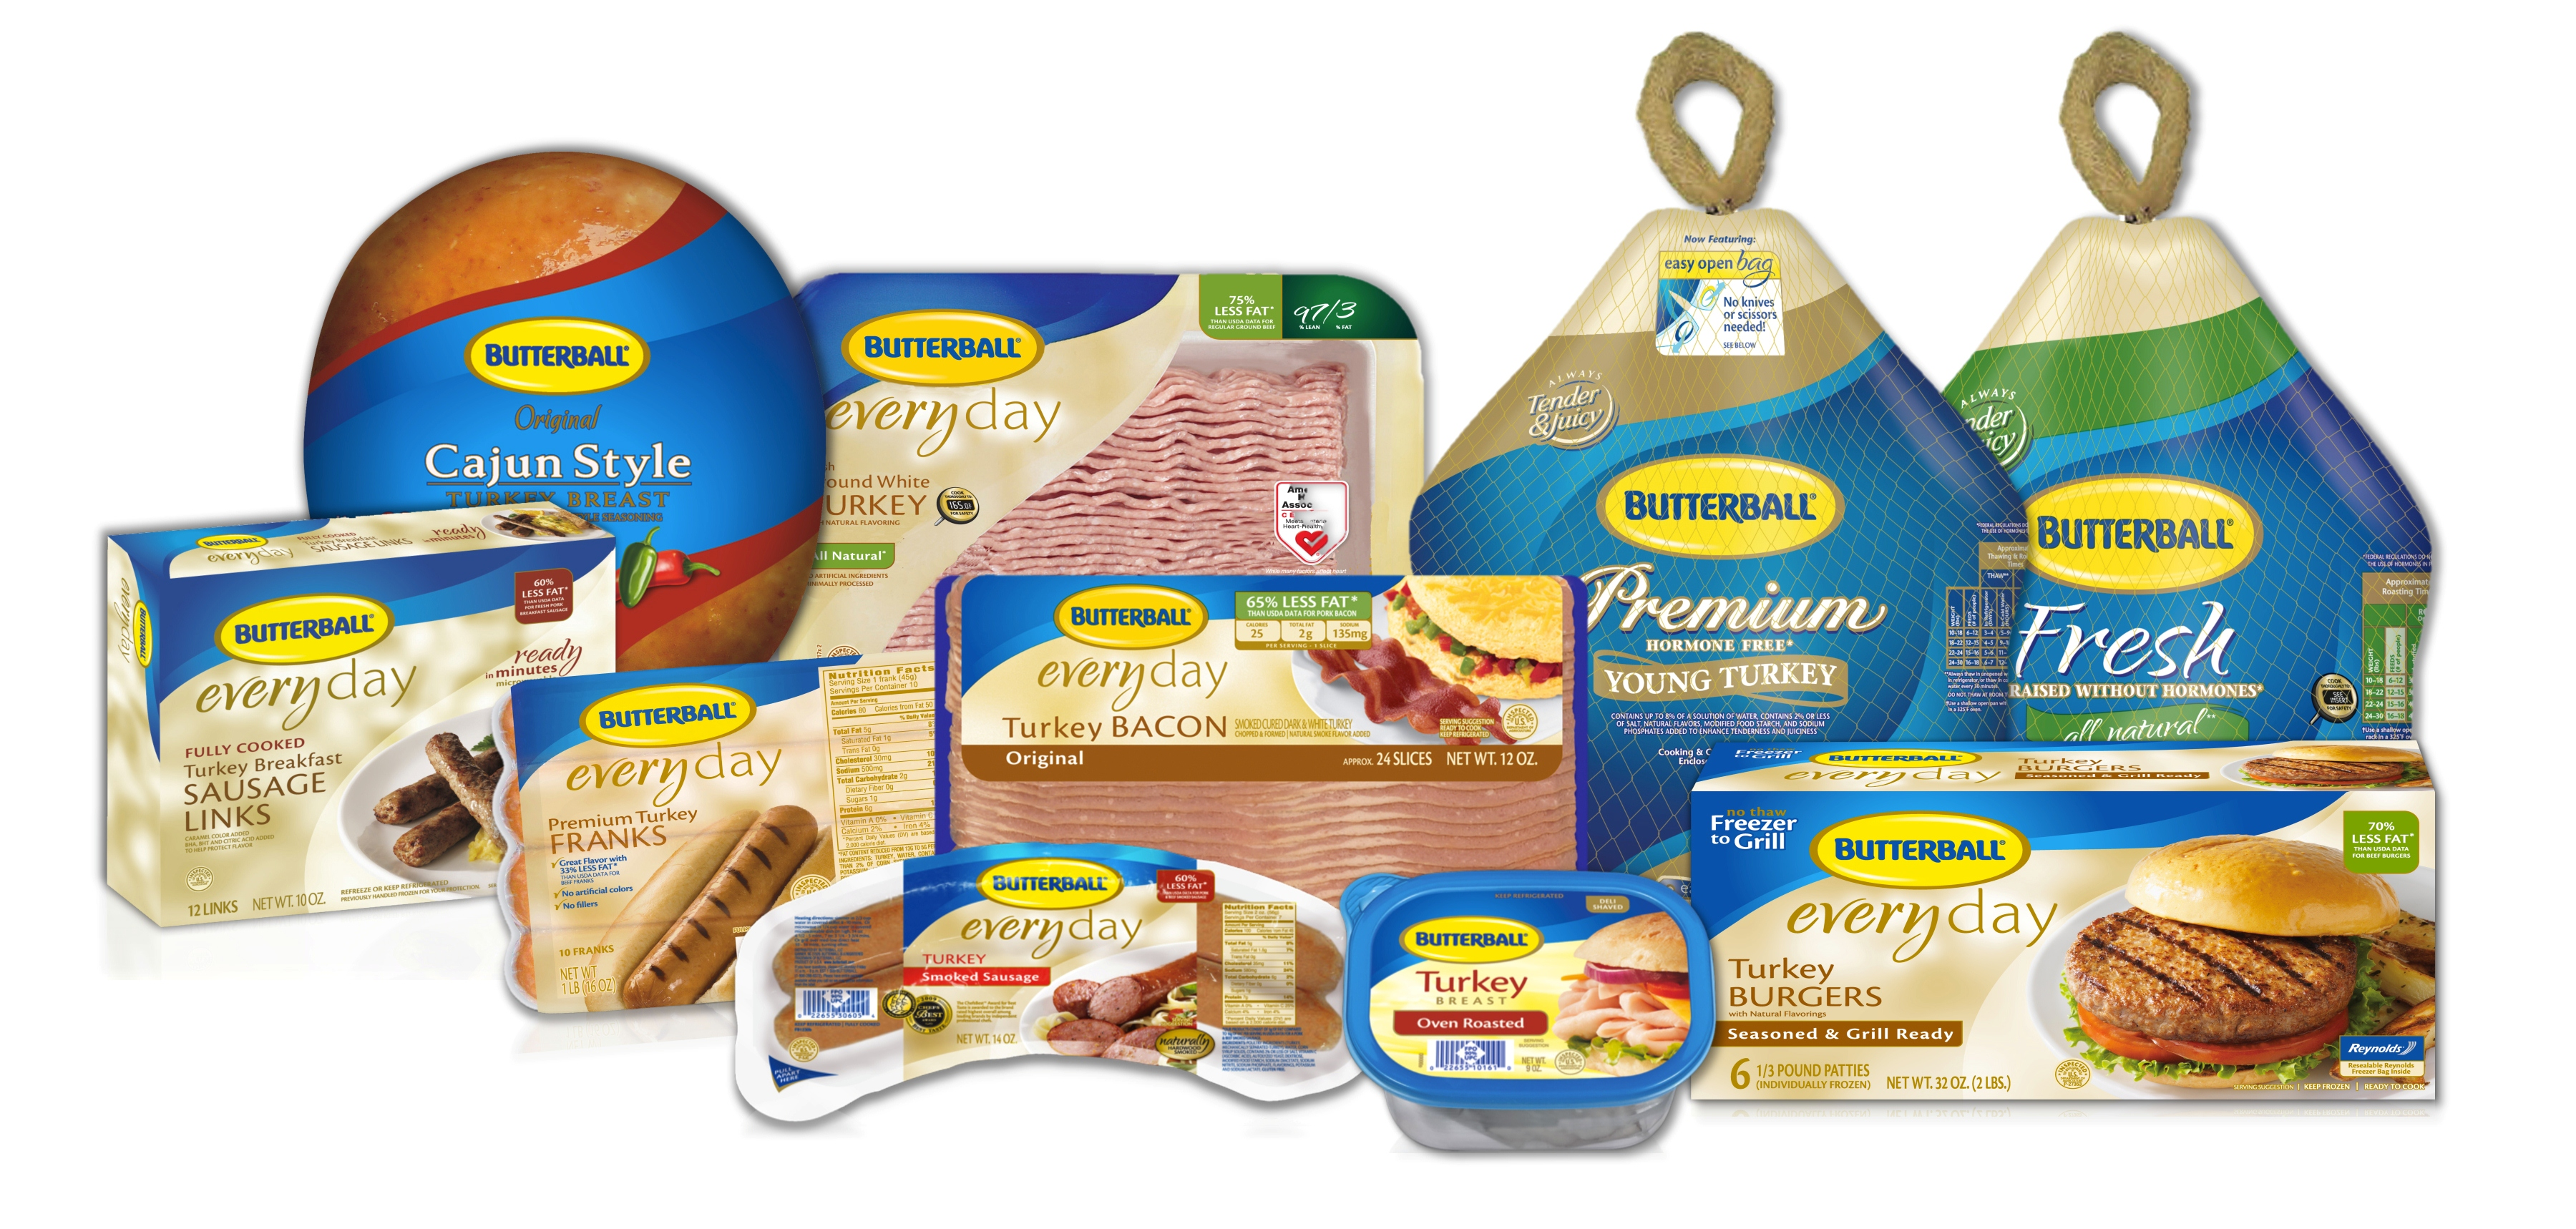 butterball turkey breast cooking instructions